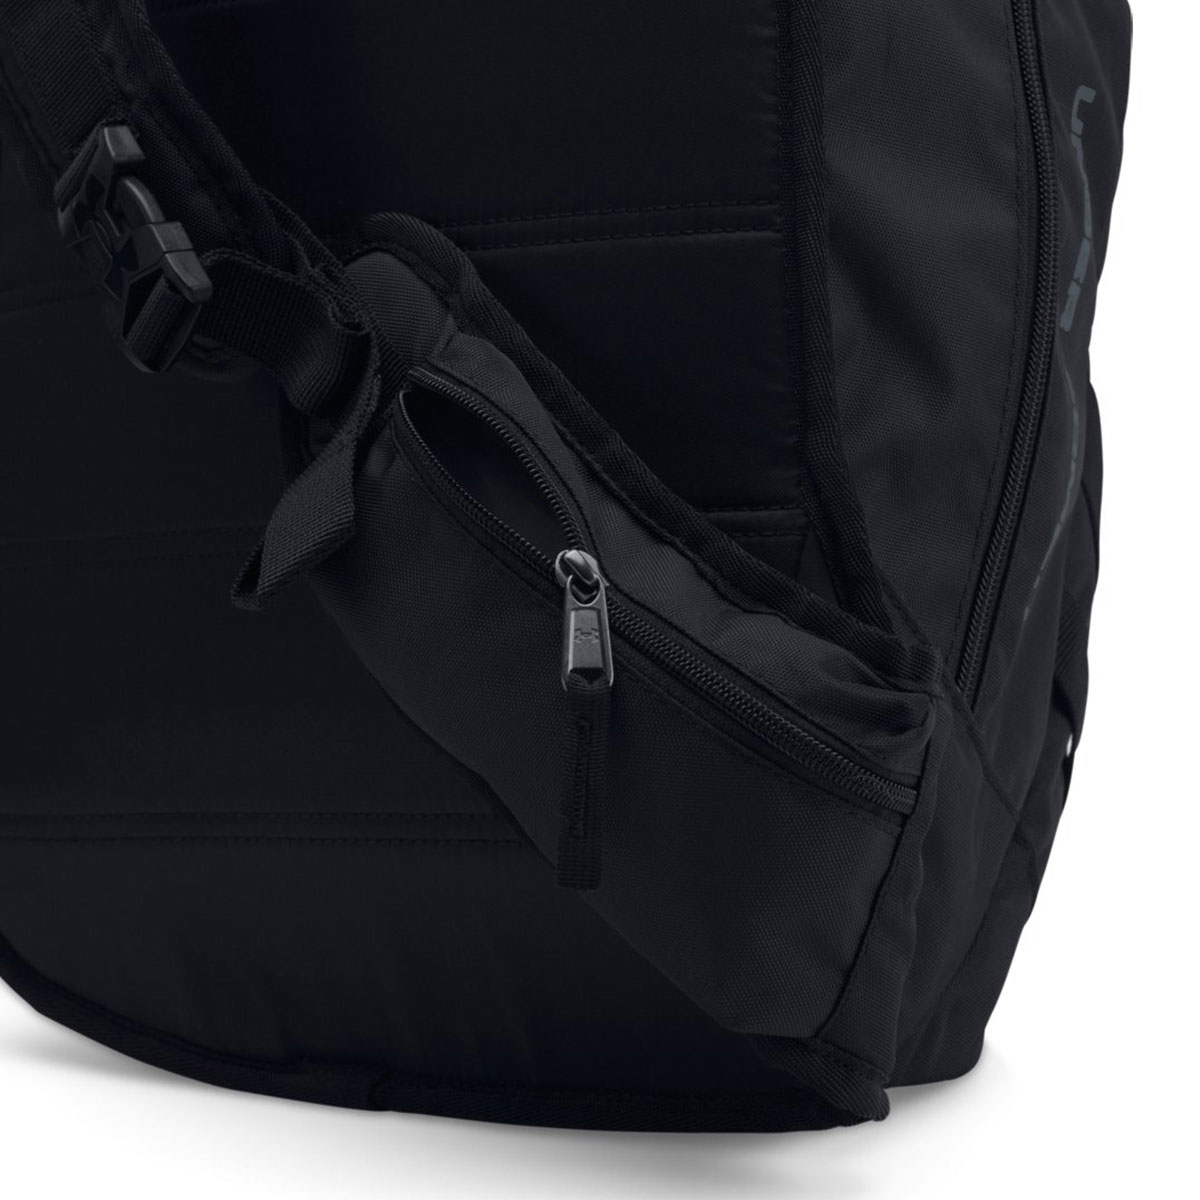 under armour sling backpack cheap   OFF49% The Largest Catalog Discounts 2fa10e6dc32ac